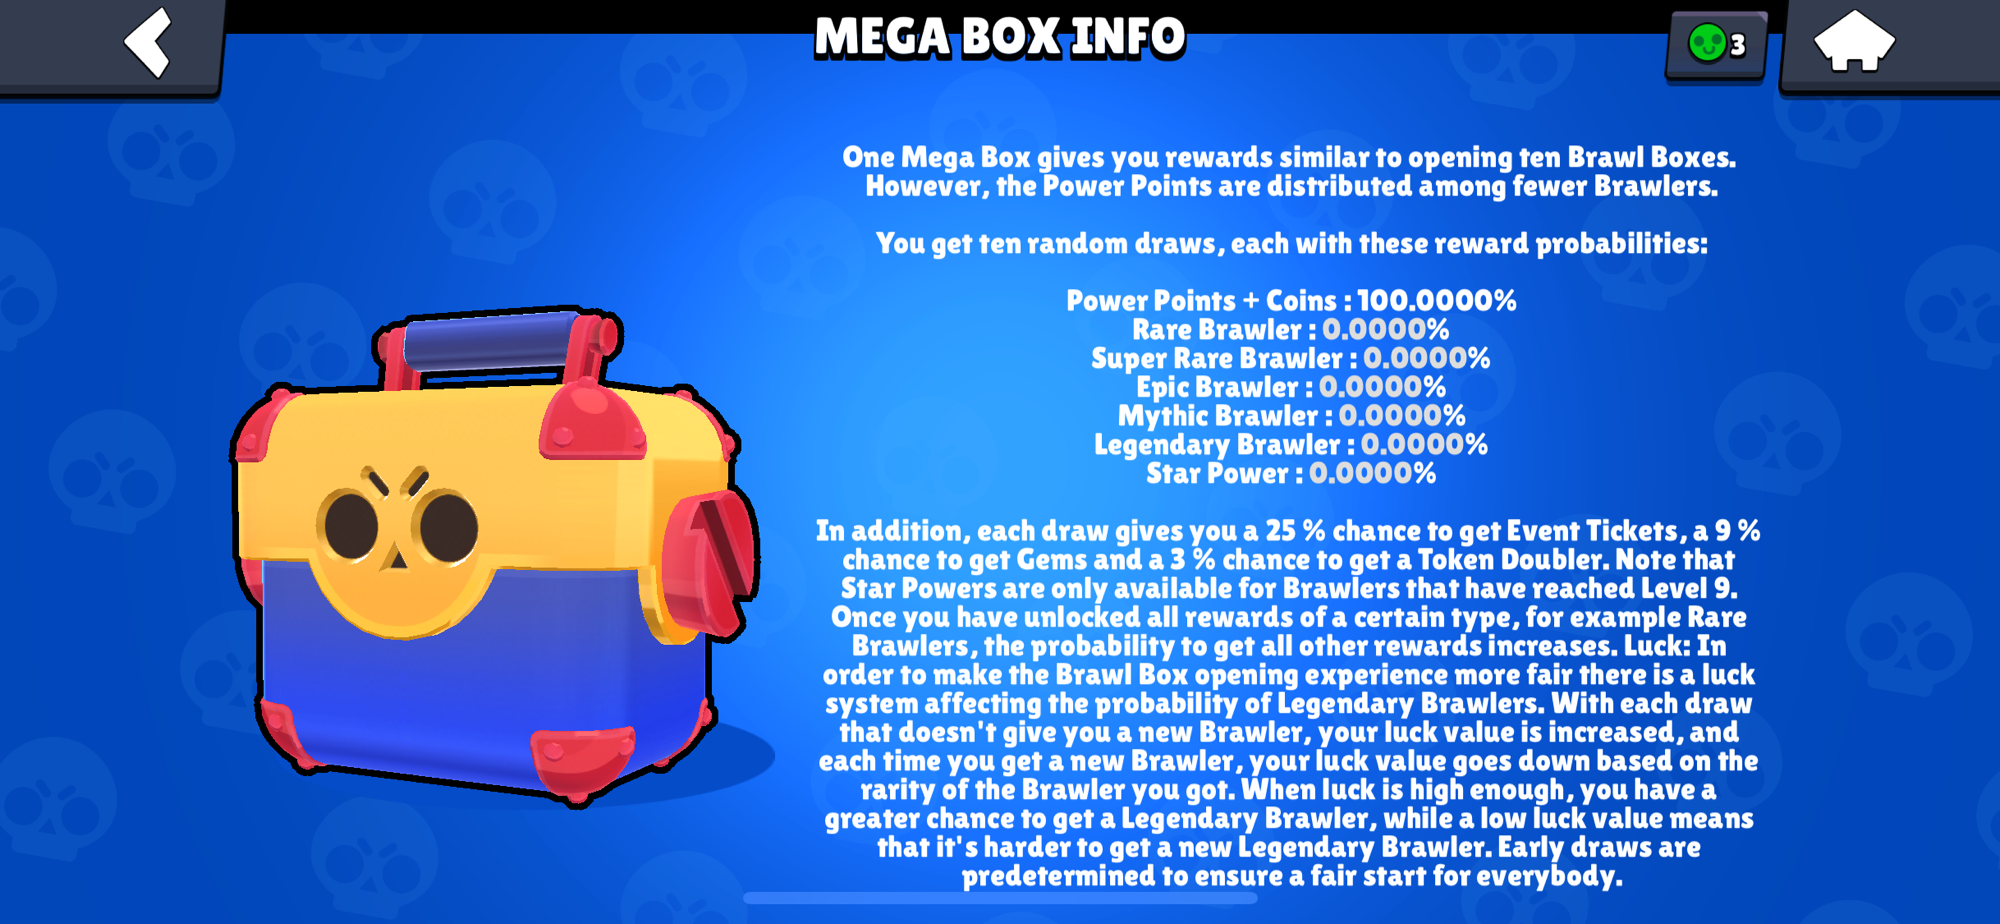 Should i buy mega box with this chance? Lol ;)